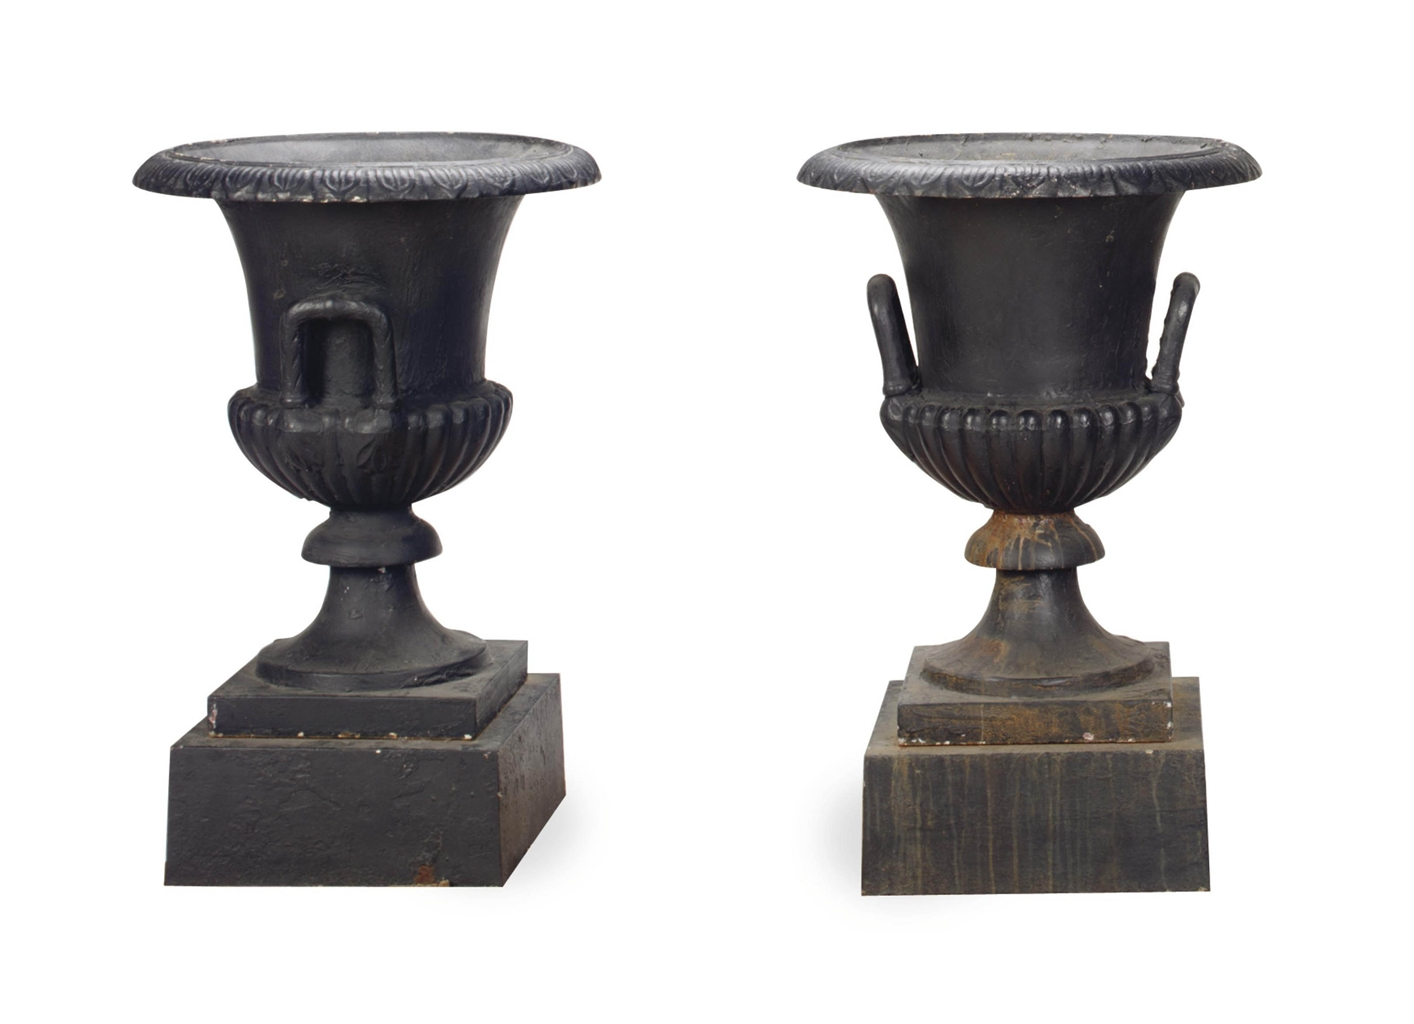 A PAIR OF LARGE BLACK-PAINTED CAST-IRON GARDEN URNS